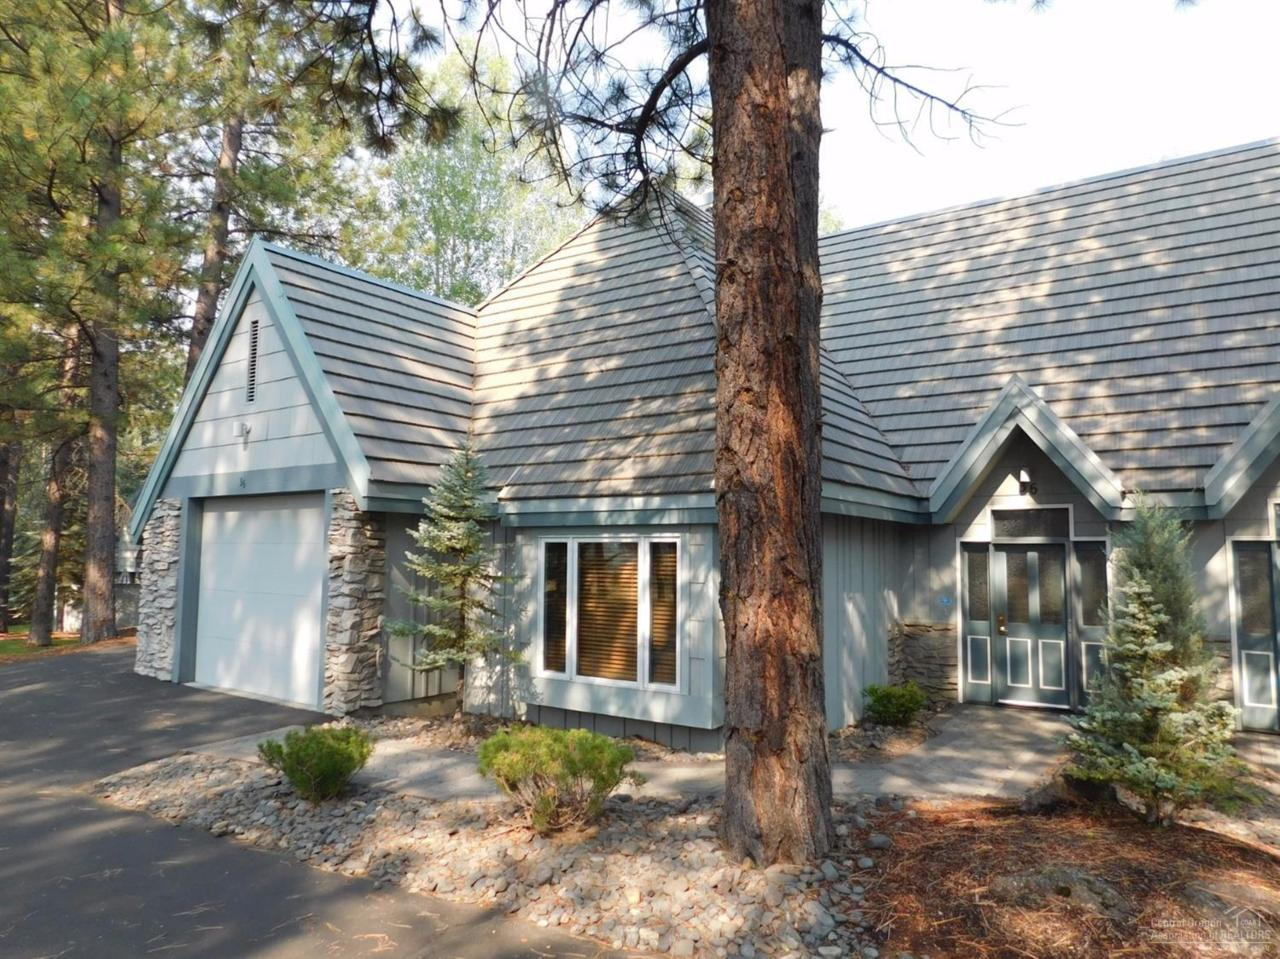 36 Stoneridge Townhomes #36, Sunriver, OR 97707 (MLS #201610176) :: Birtola Garmyn High Desert Realty